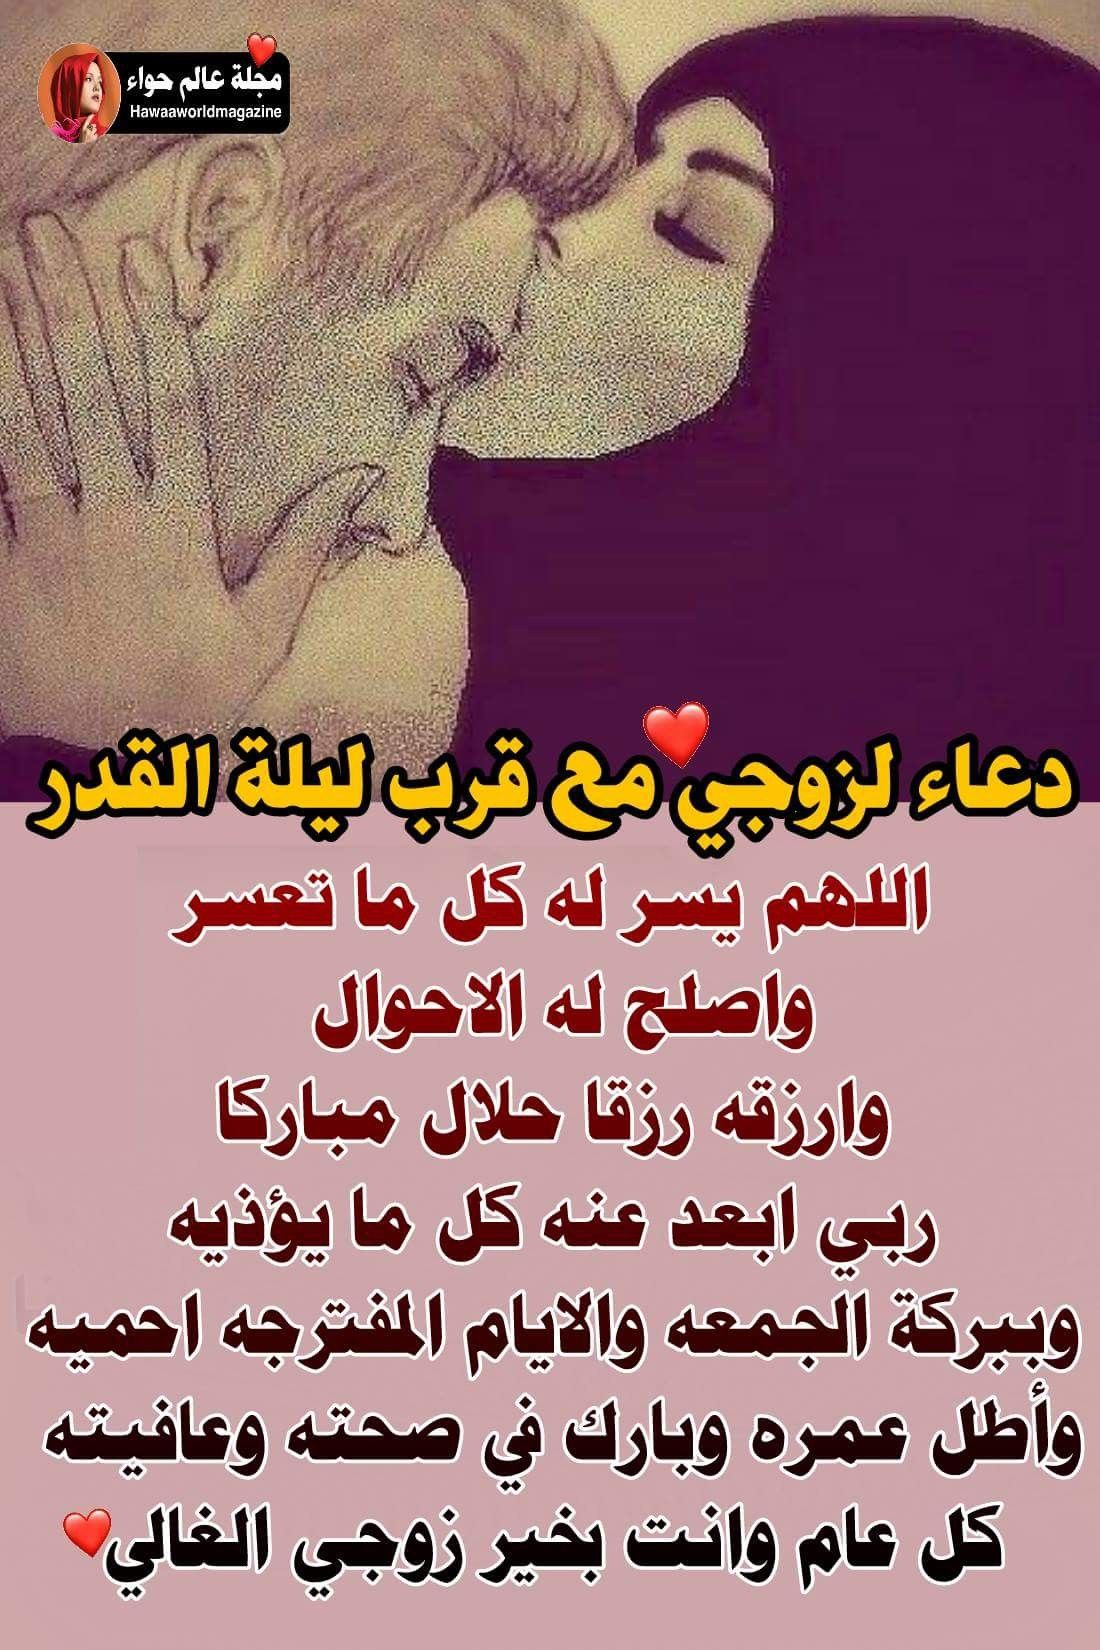 Pin By Sawsan H L On قرة عيني S Ramadan Movie Posters Poster